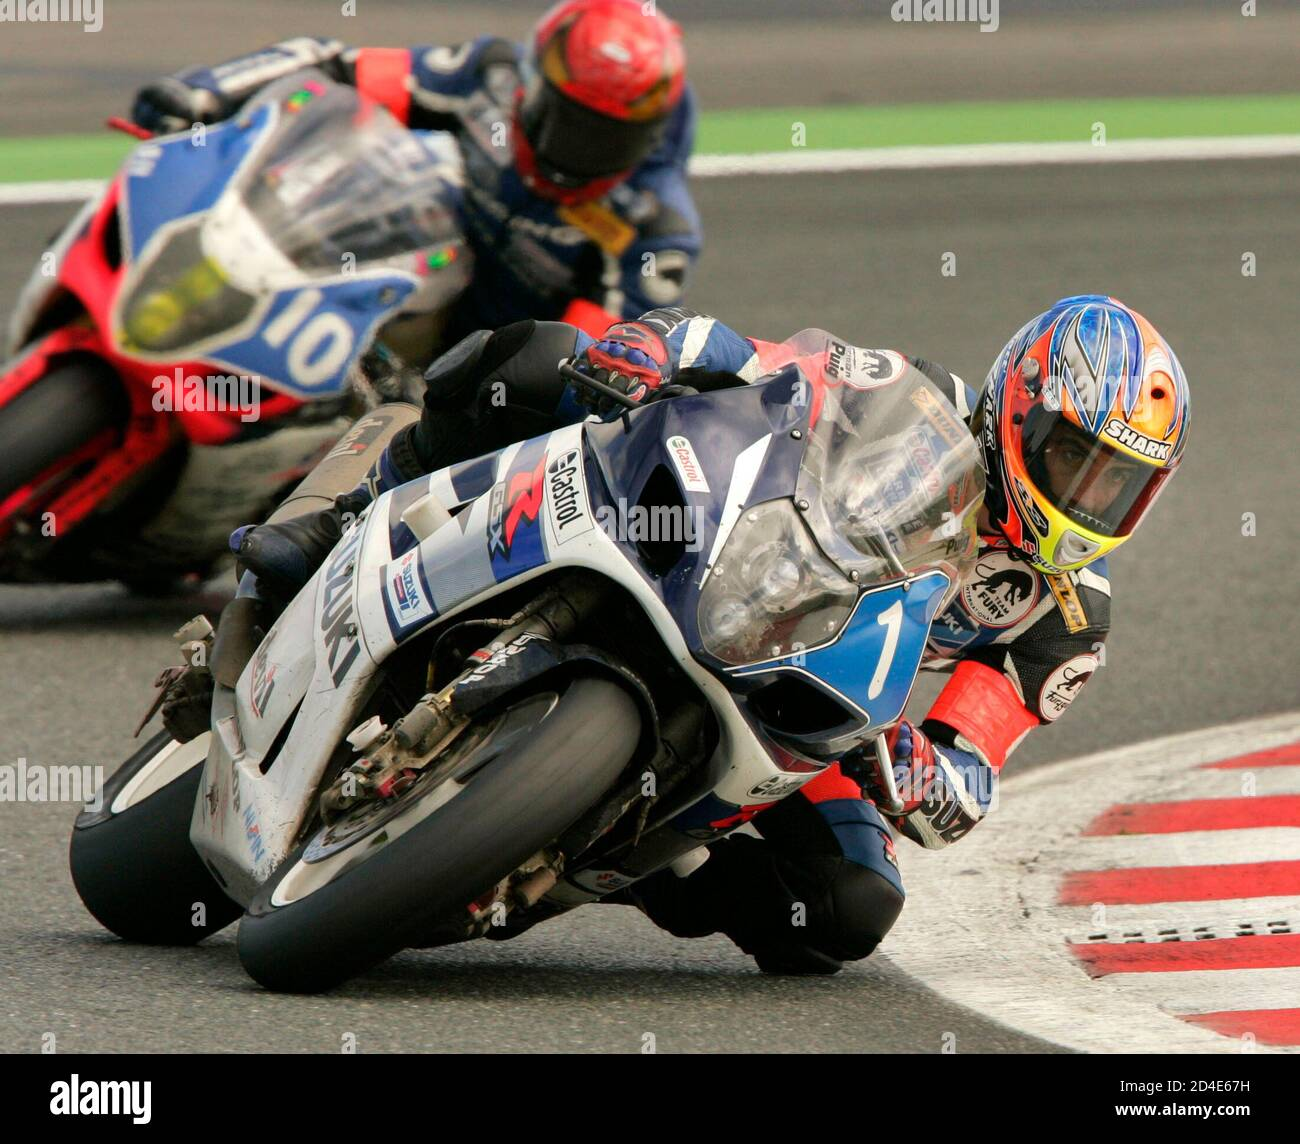 Matthieu Lagrive of France drives his Suzuki GSXR 1000 to lead the Bol d'Or endurance motorcycling race after 22 hours of competition in Magny-Cours.  Suzuki Castrol Team rider Matthieu Lagrive (R) of France drives his Suzuki GSXR 1000 to lead the Bol d'Or endurance motorcycling race after 22 hours of competition in Magny-Cours, France September 12, 2004. Behind (L) is the Infini Team Moto Suzuki GSXR 1000 in seventh place. REUTERS/Robert Pratta Foto de stock